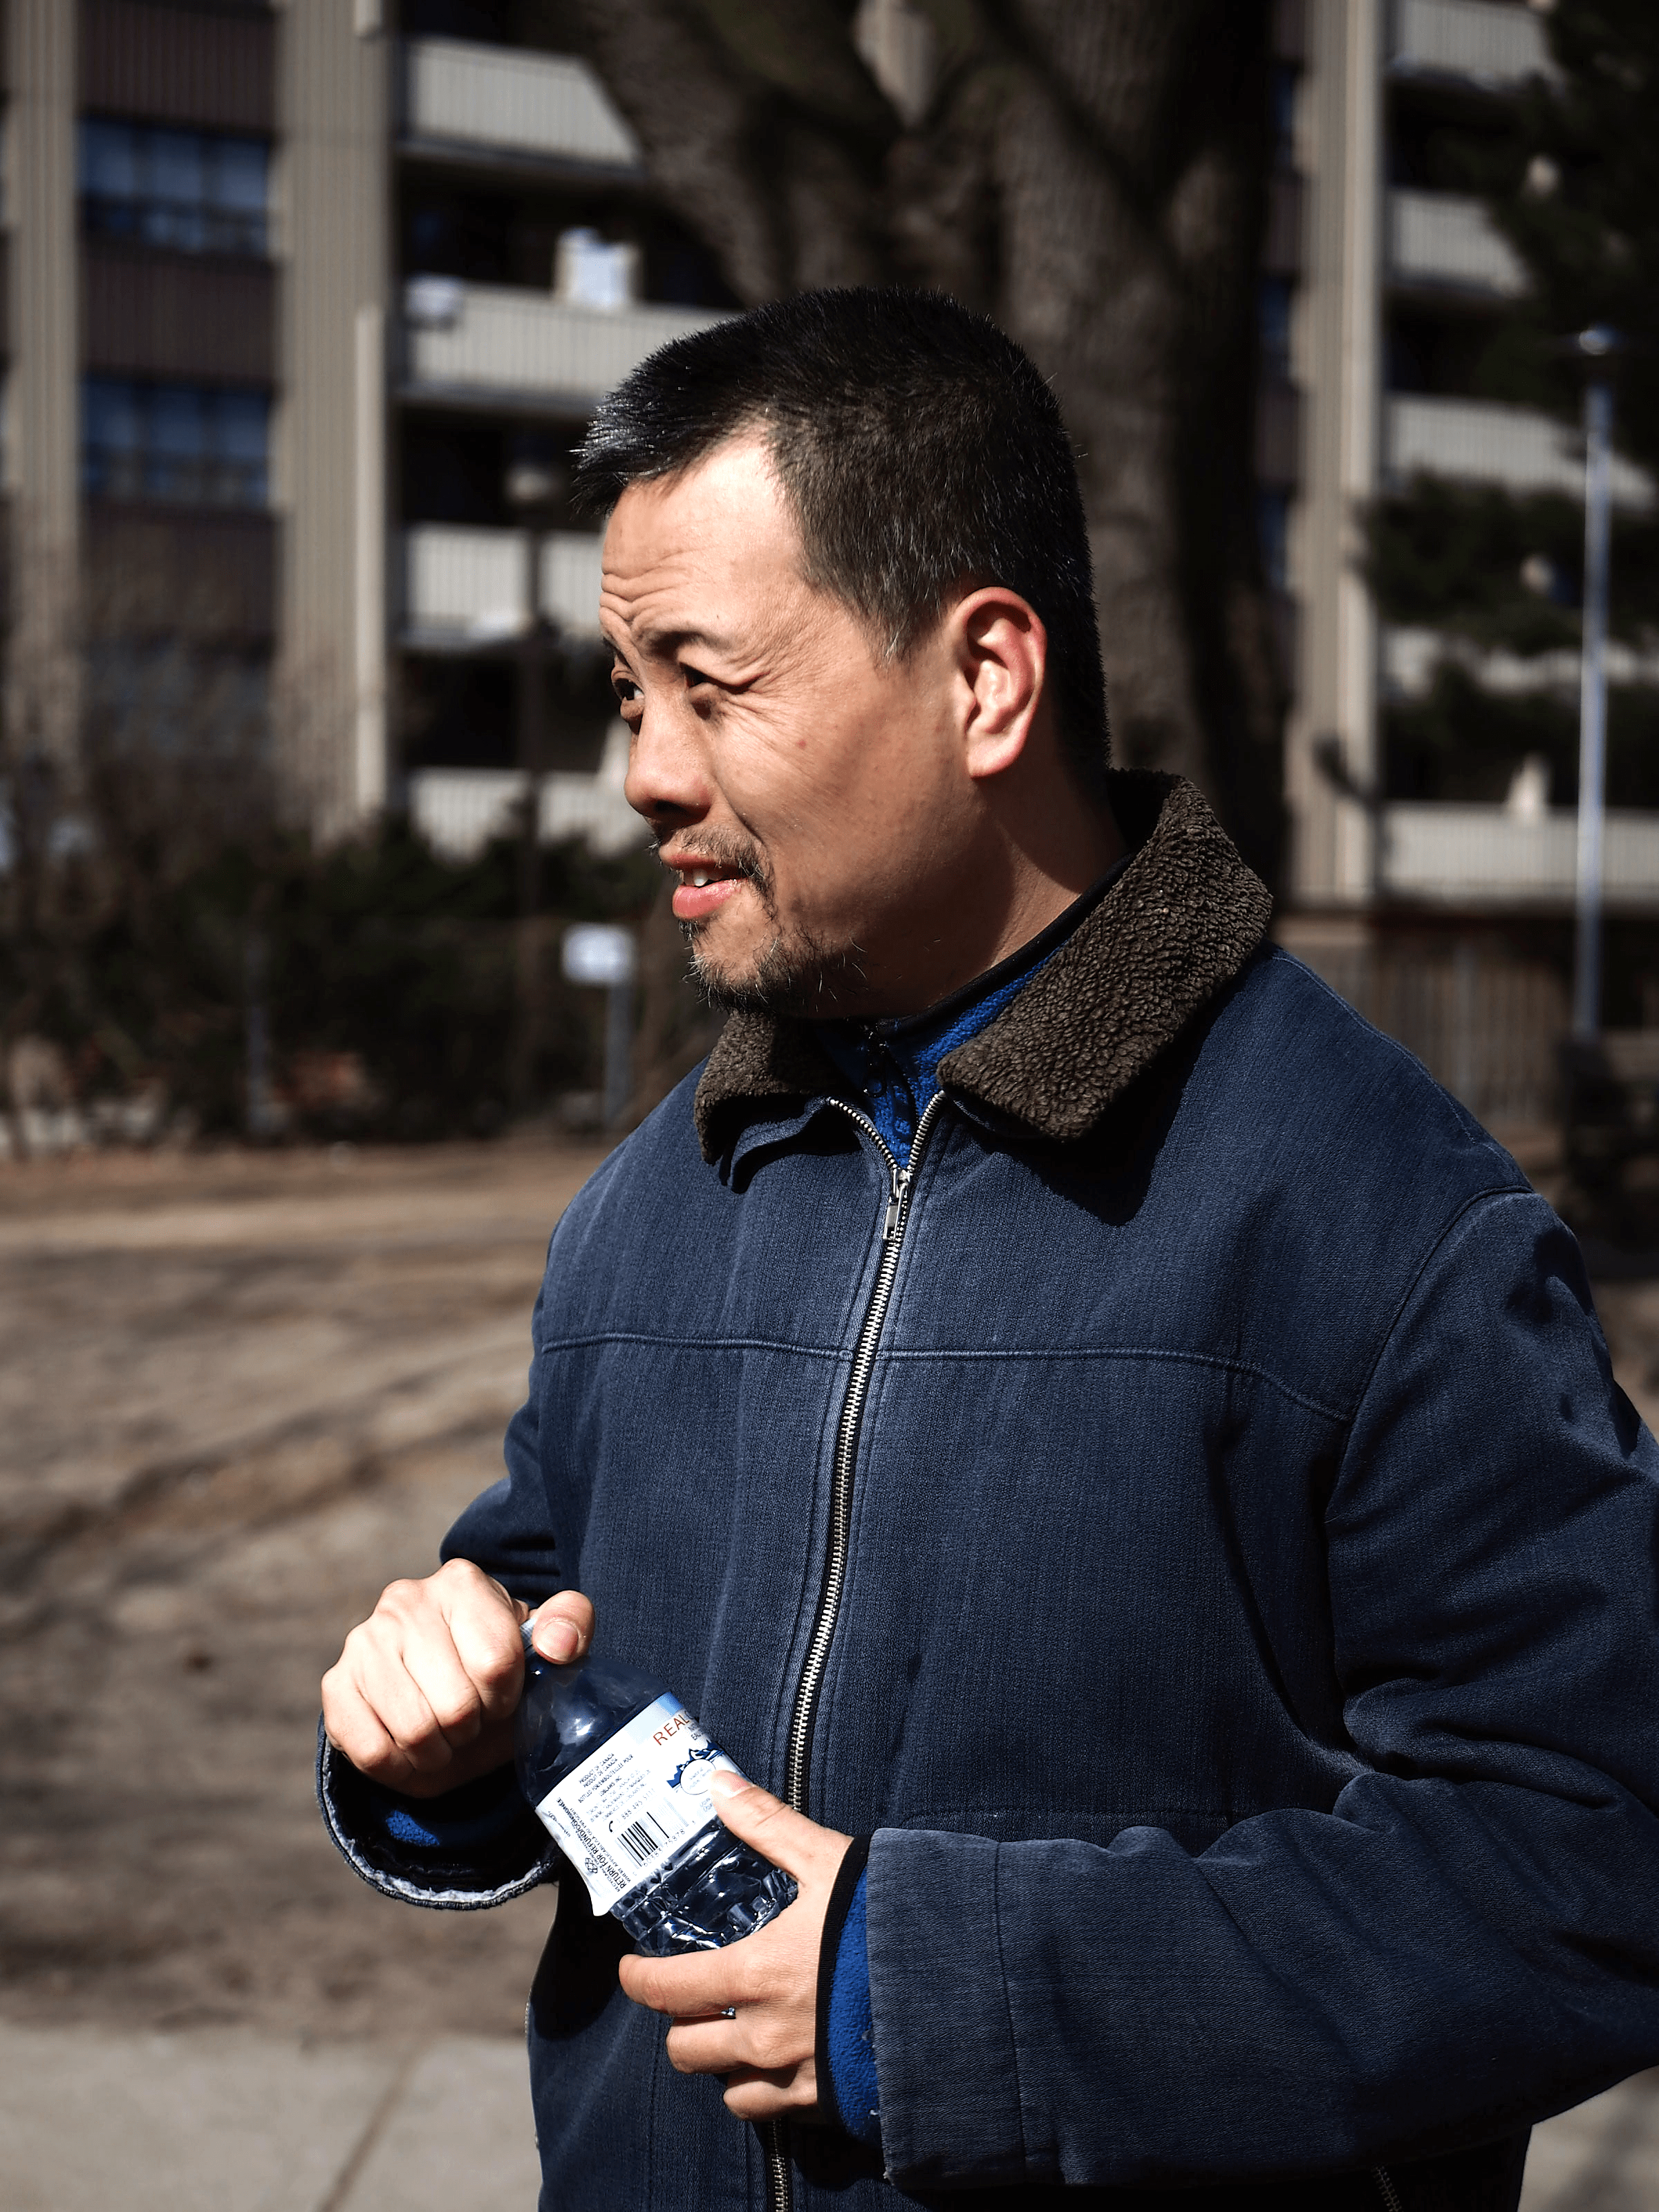 A man is standing outside and smiling. He is holding a water bottle and wearing a coat.